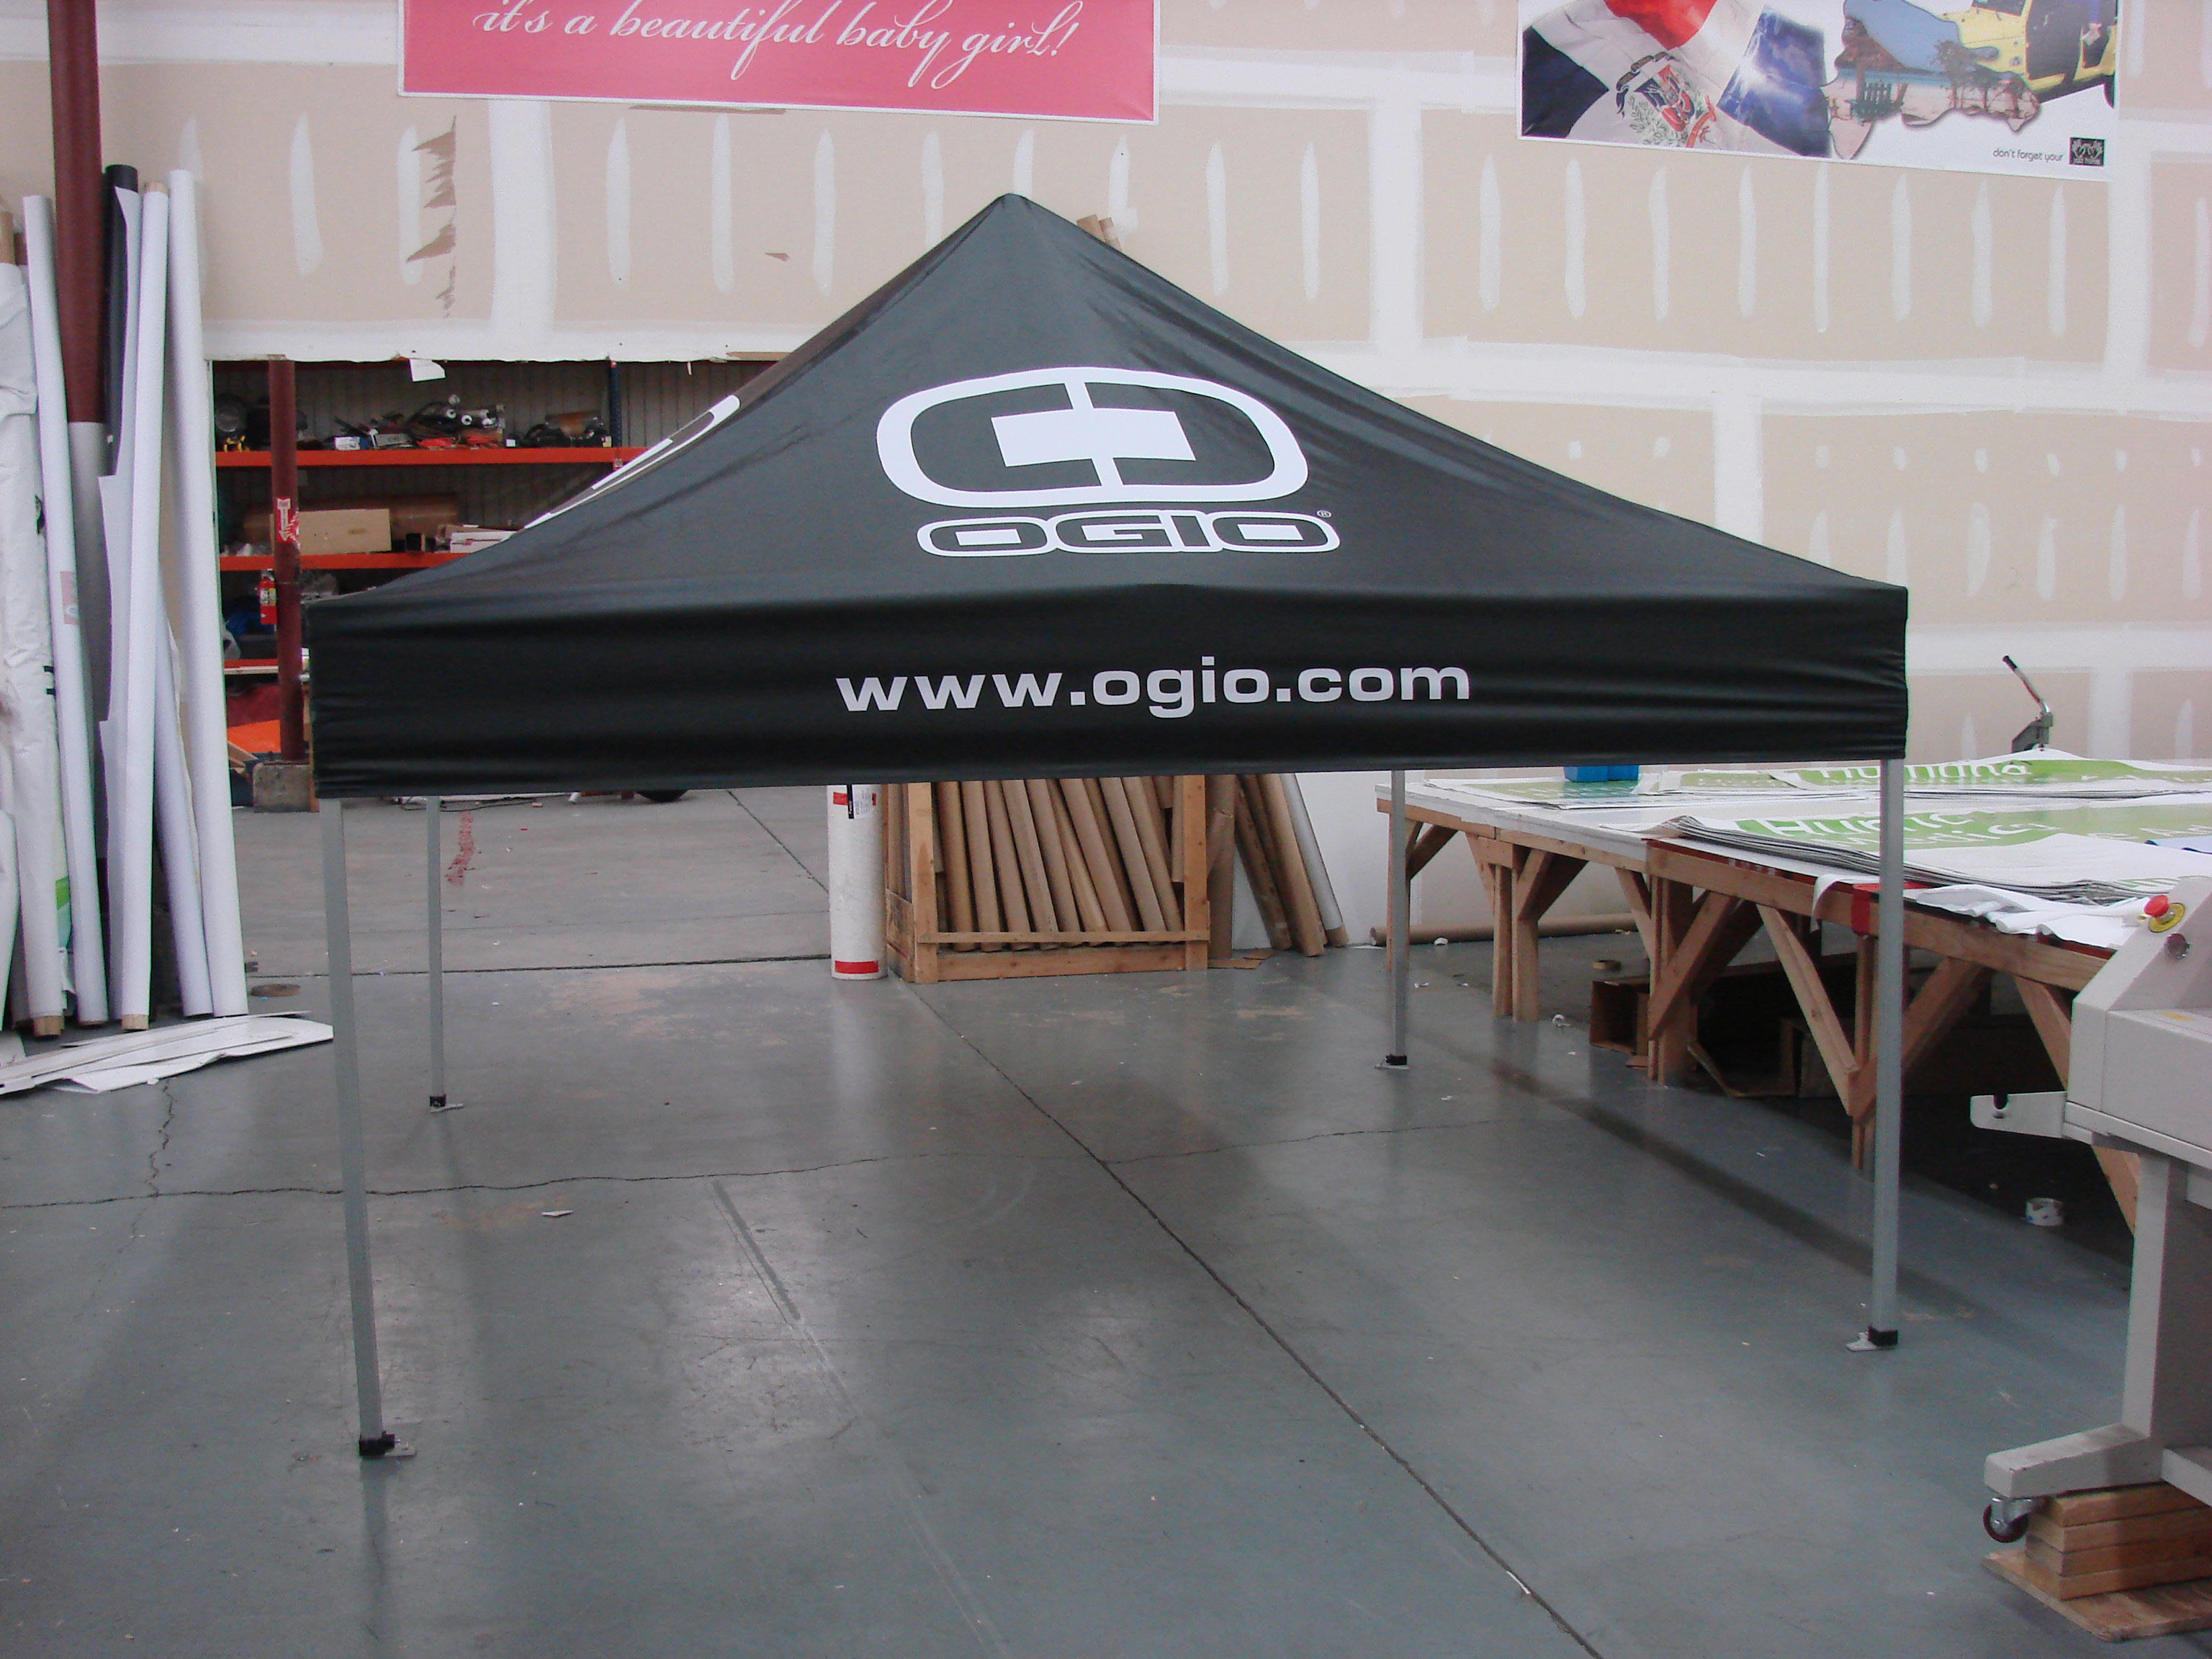 As usual the Visible Tents tea m ... & Custom Canopies - OGIO The Popular Lifestyle Company Turned to ...